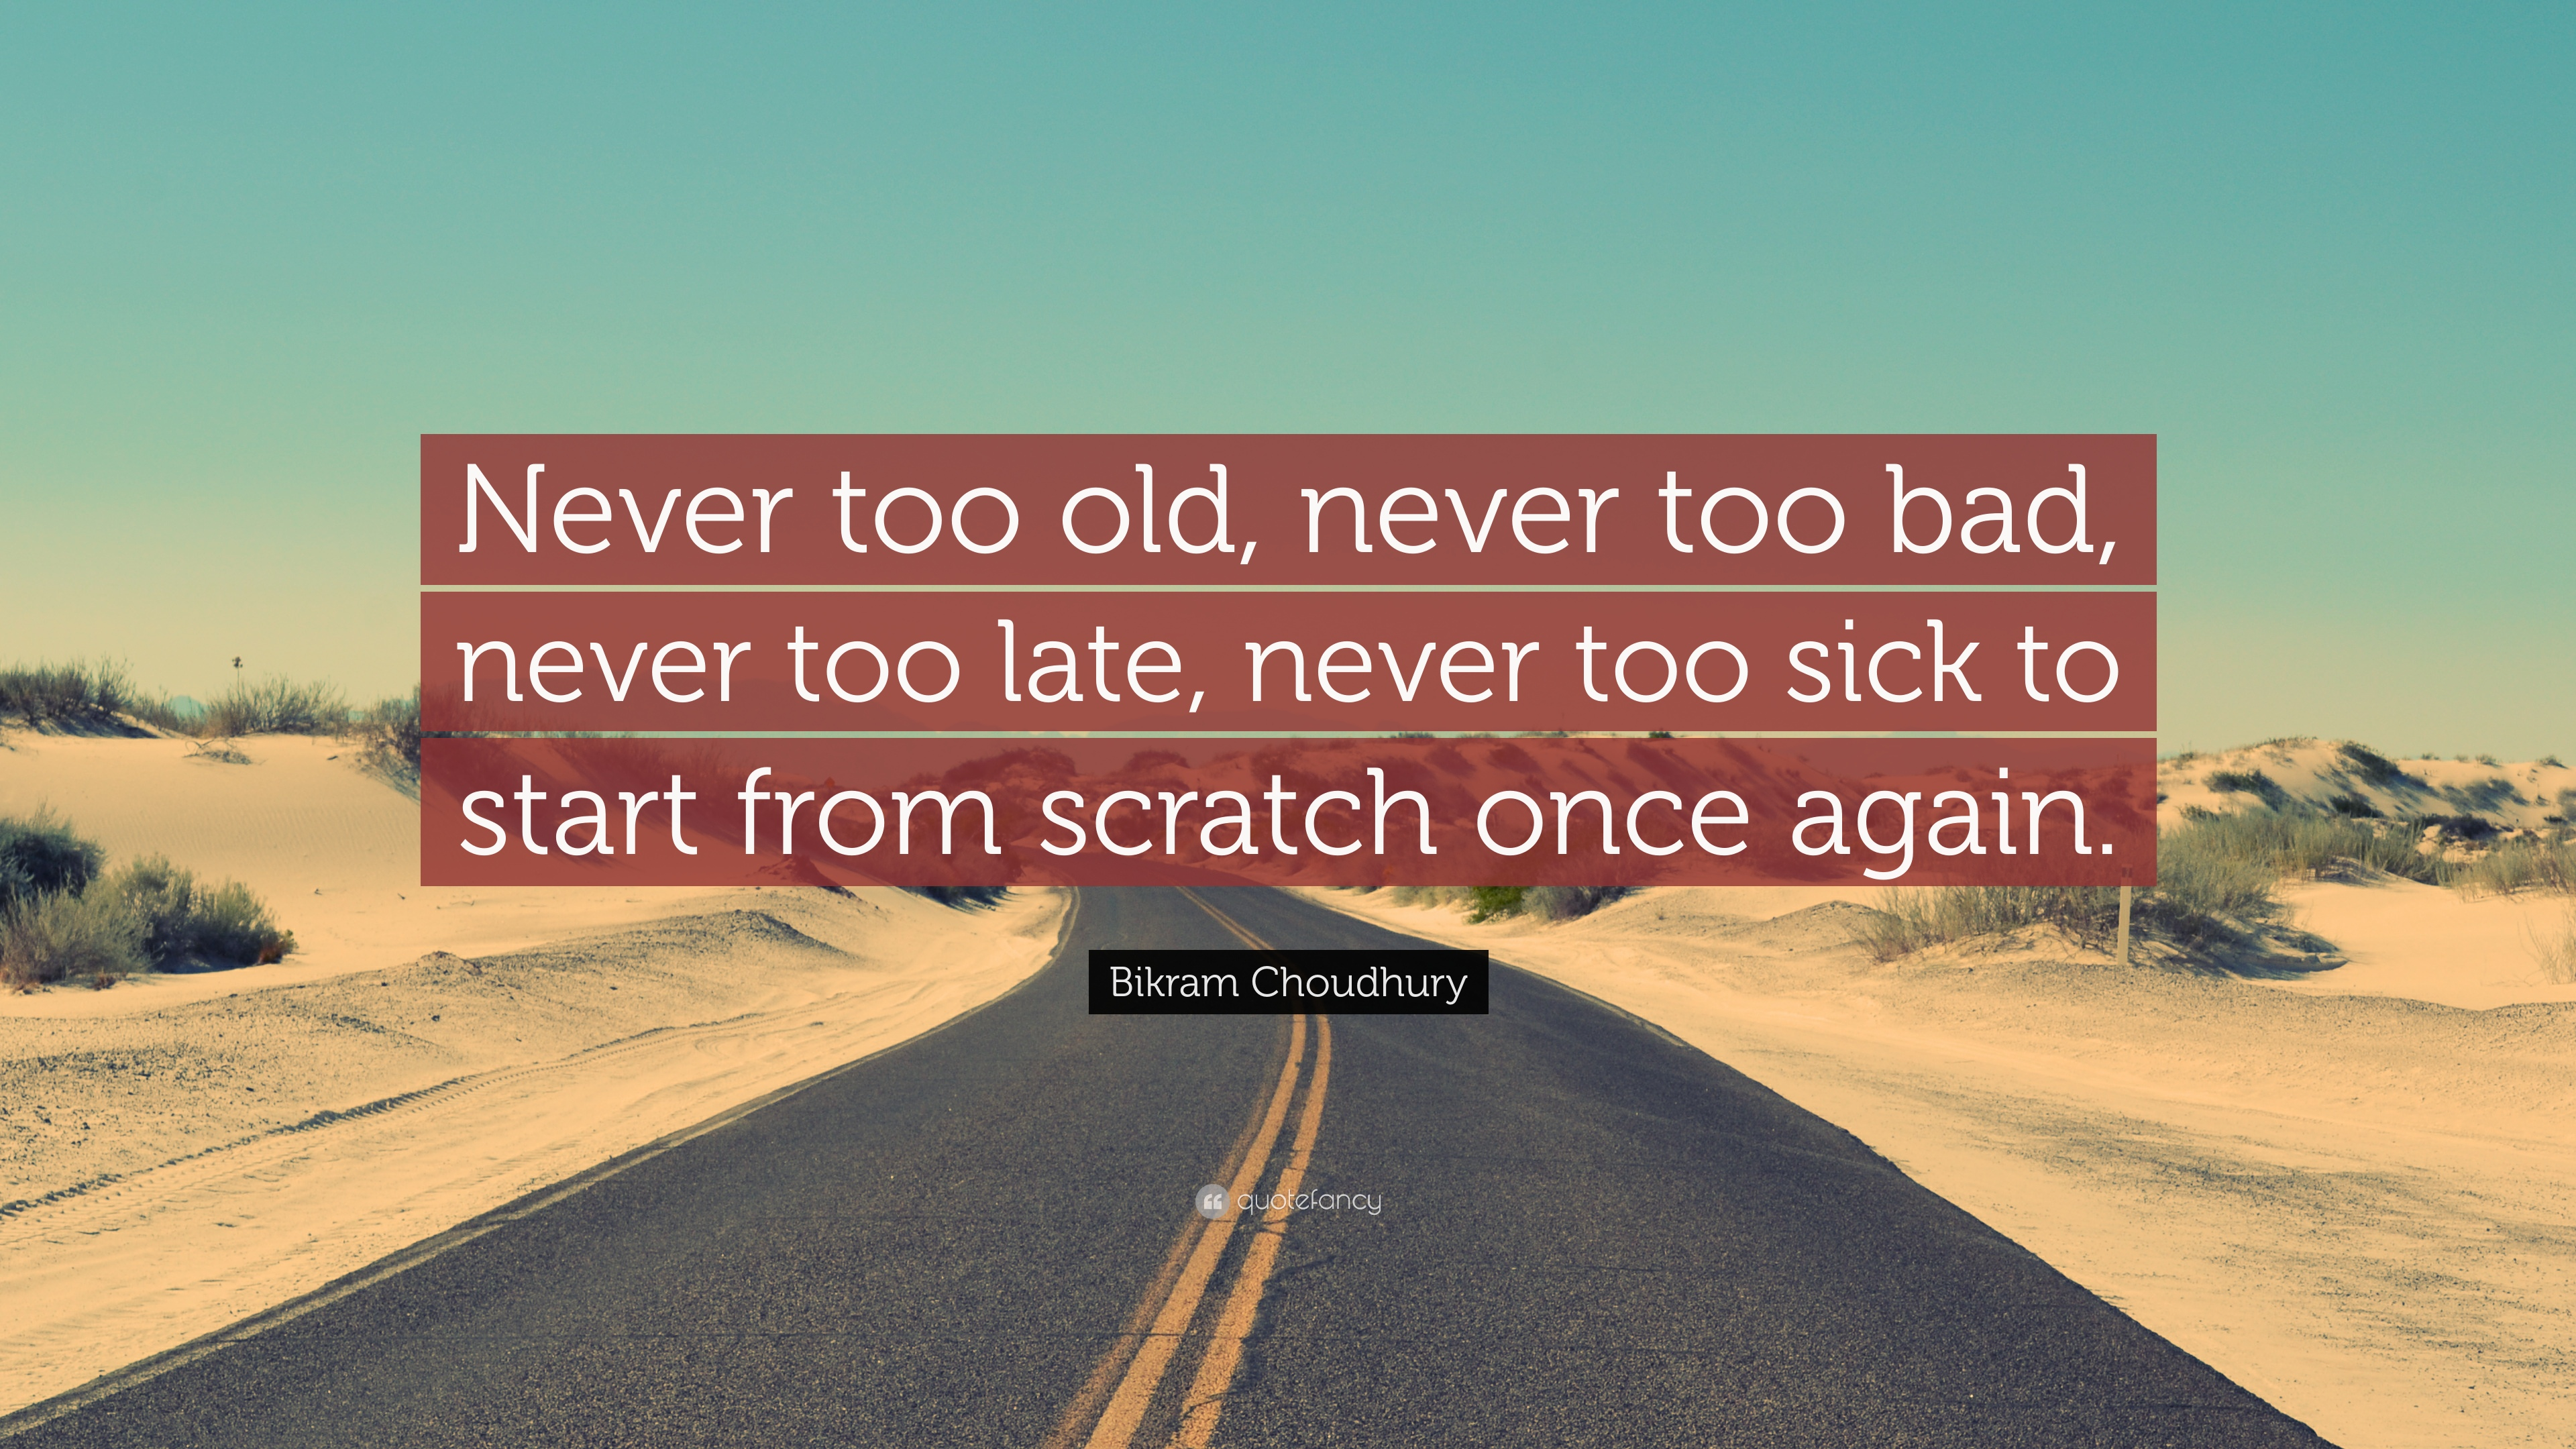 Bikram Choudhury Quote: U201cNever Too Old, Never Too Bad, Never Too Late